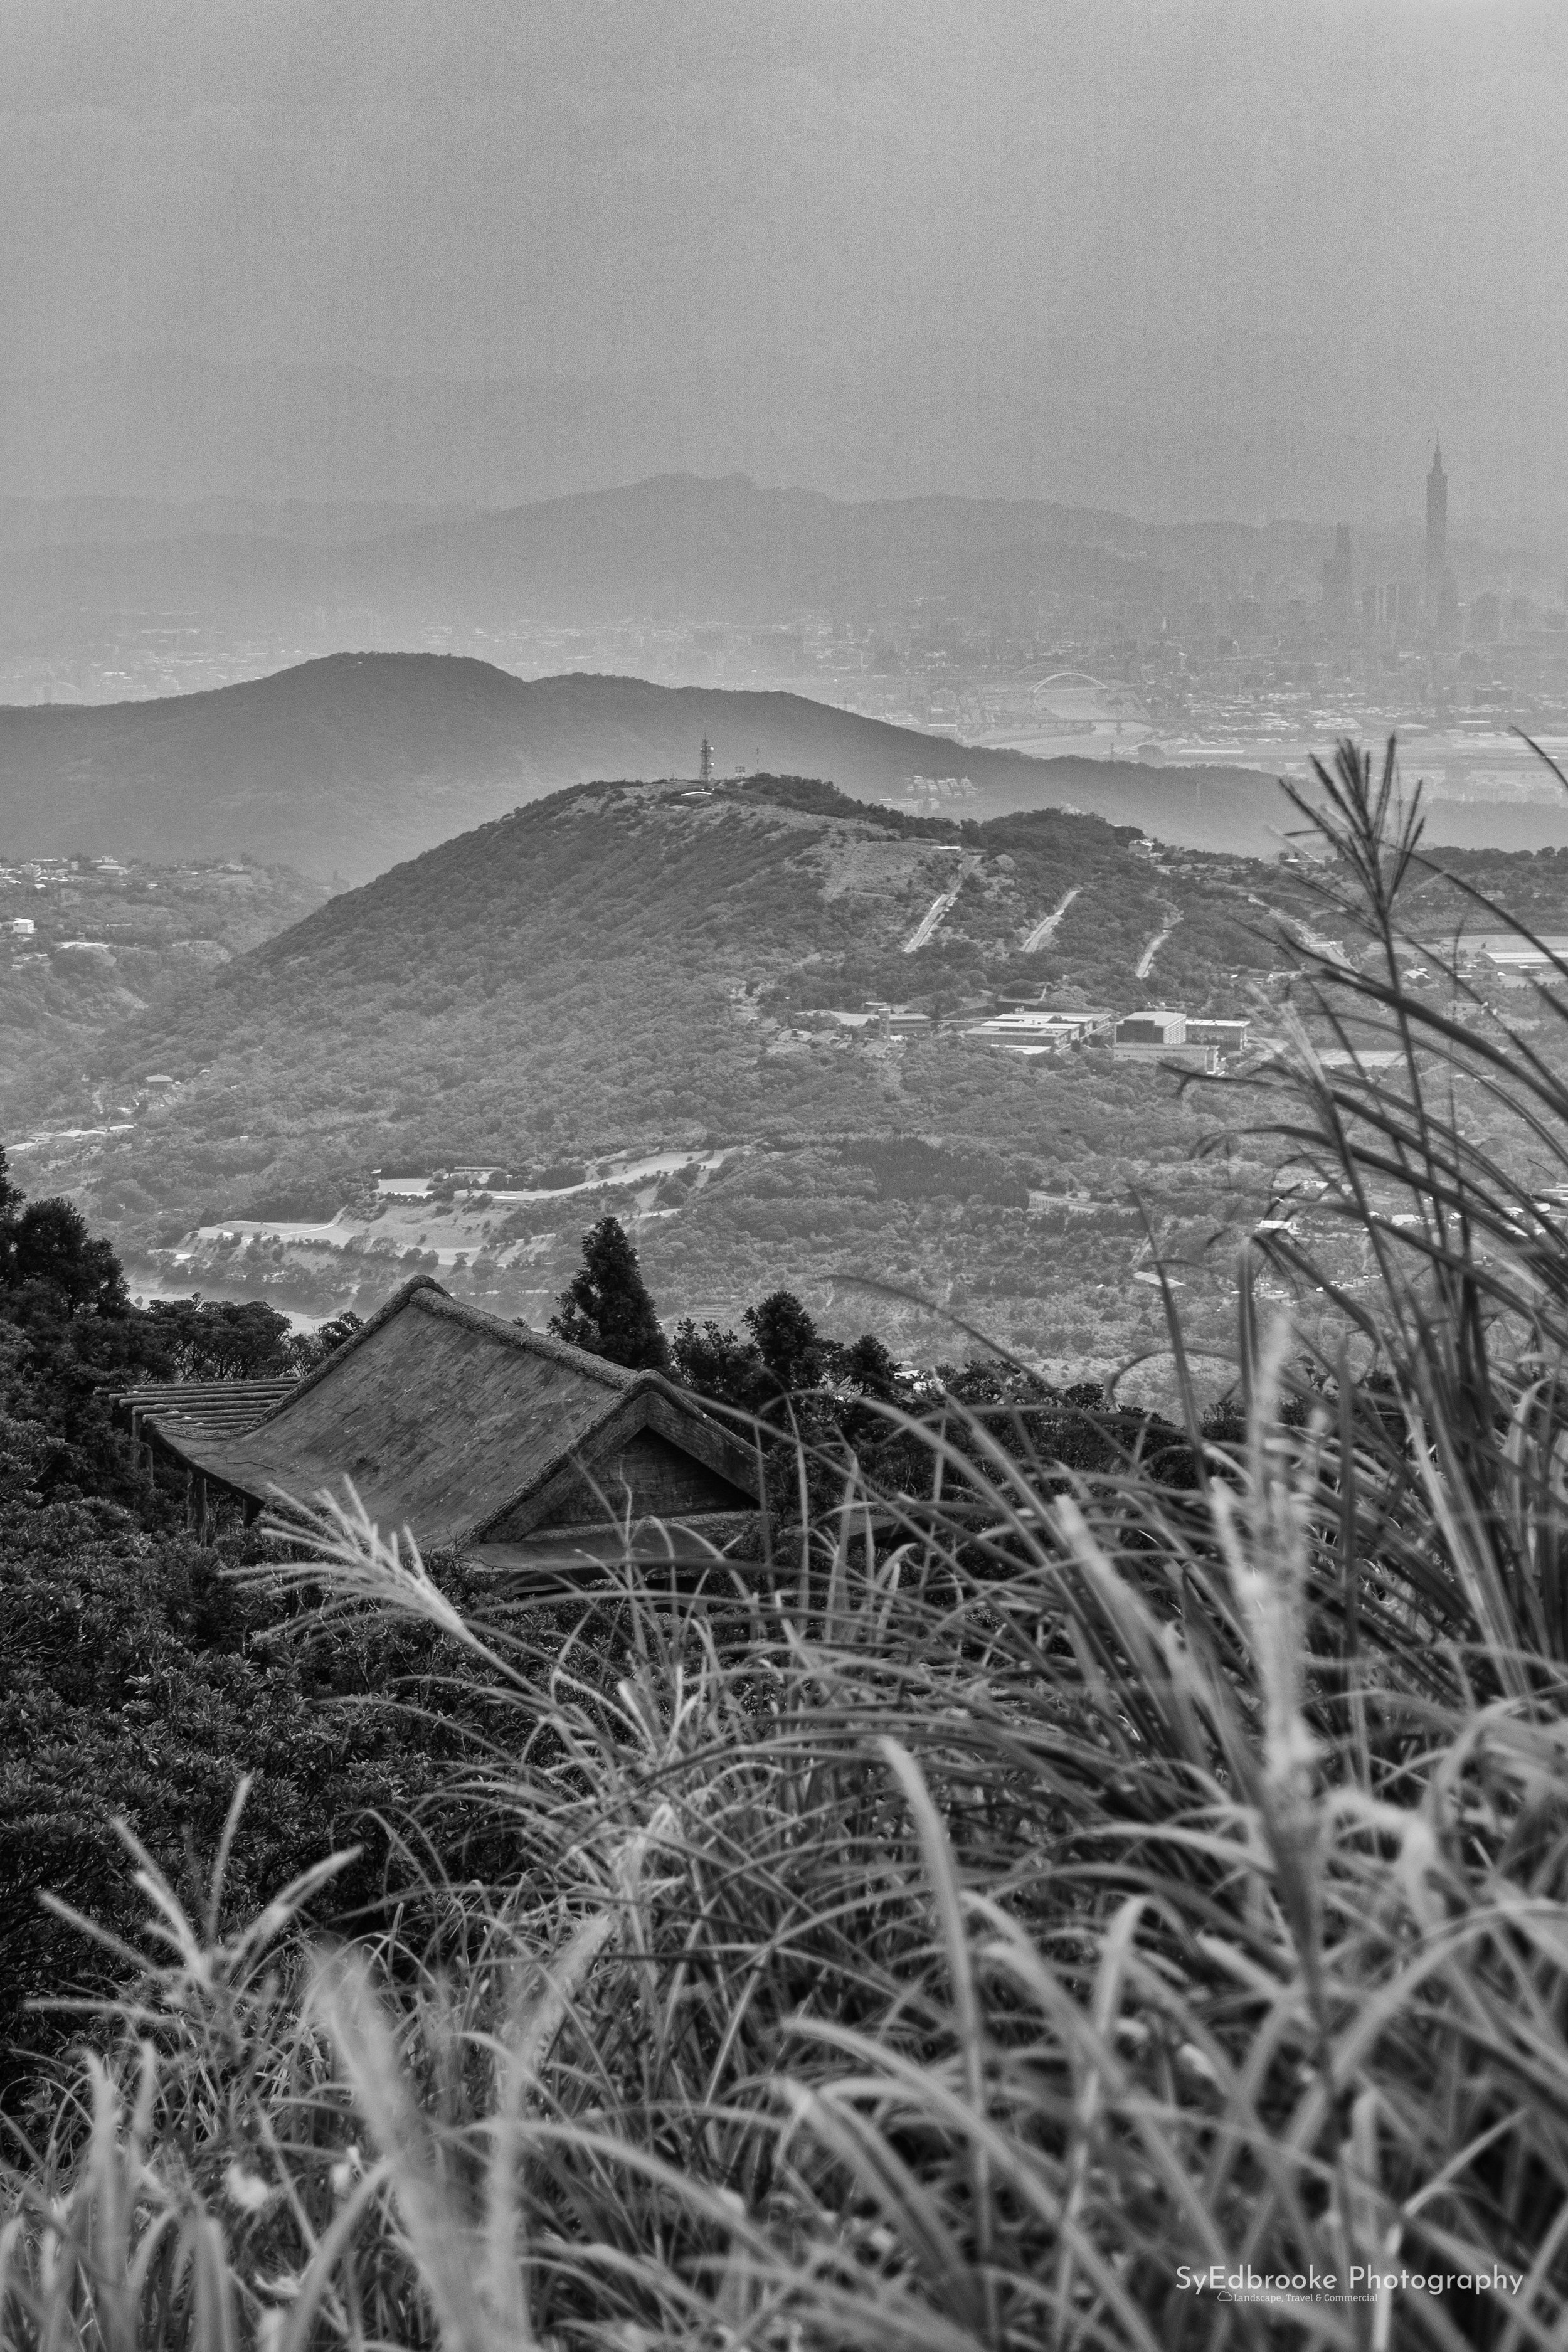 The view of Taipei 101 is a nice contrast compared to the traditional shack in the foreground on the stairs down.  f5.8, ISO 100, 1/100, 80mm